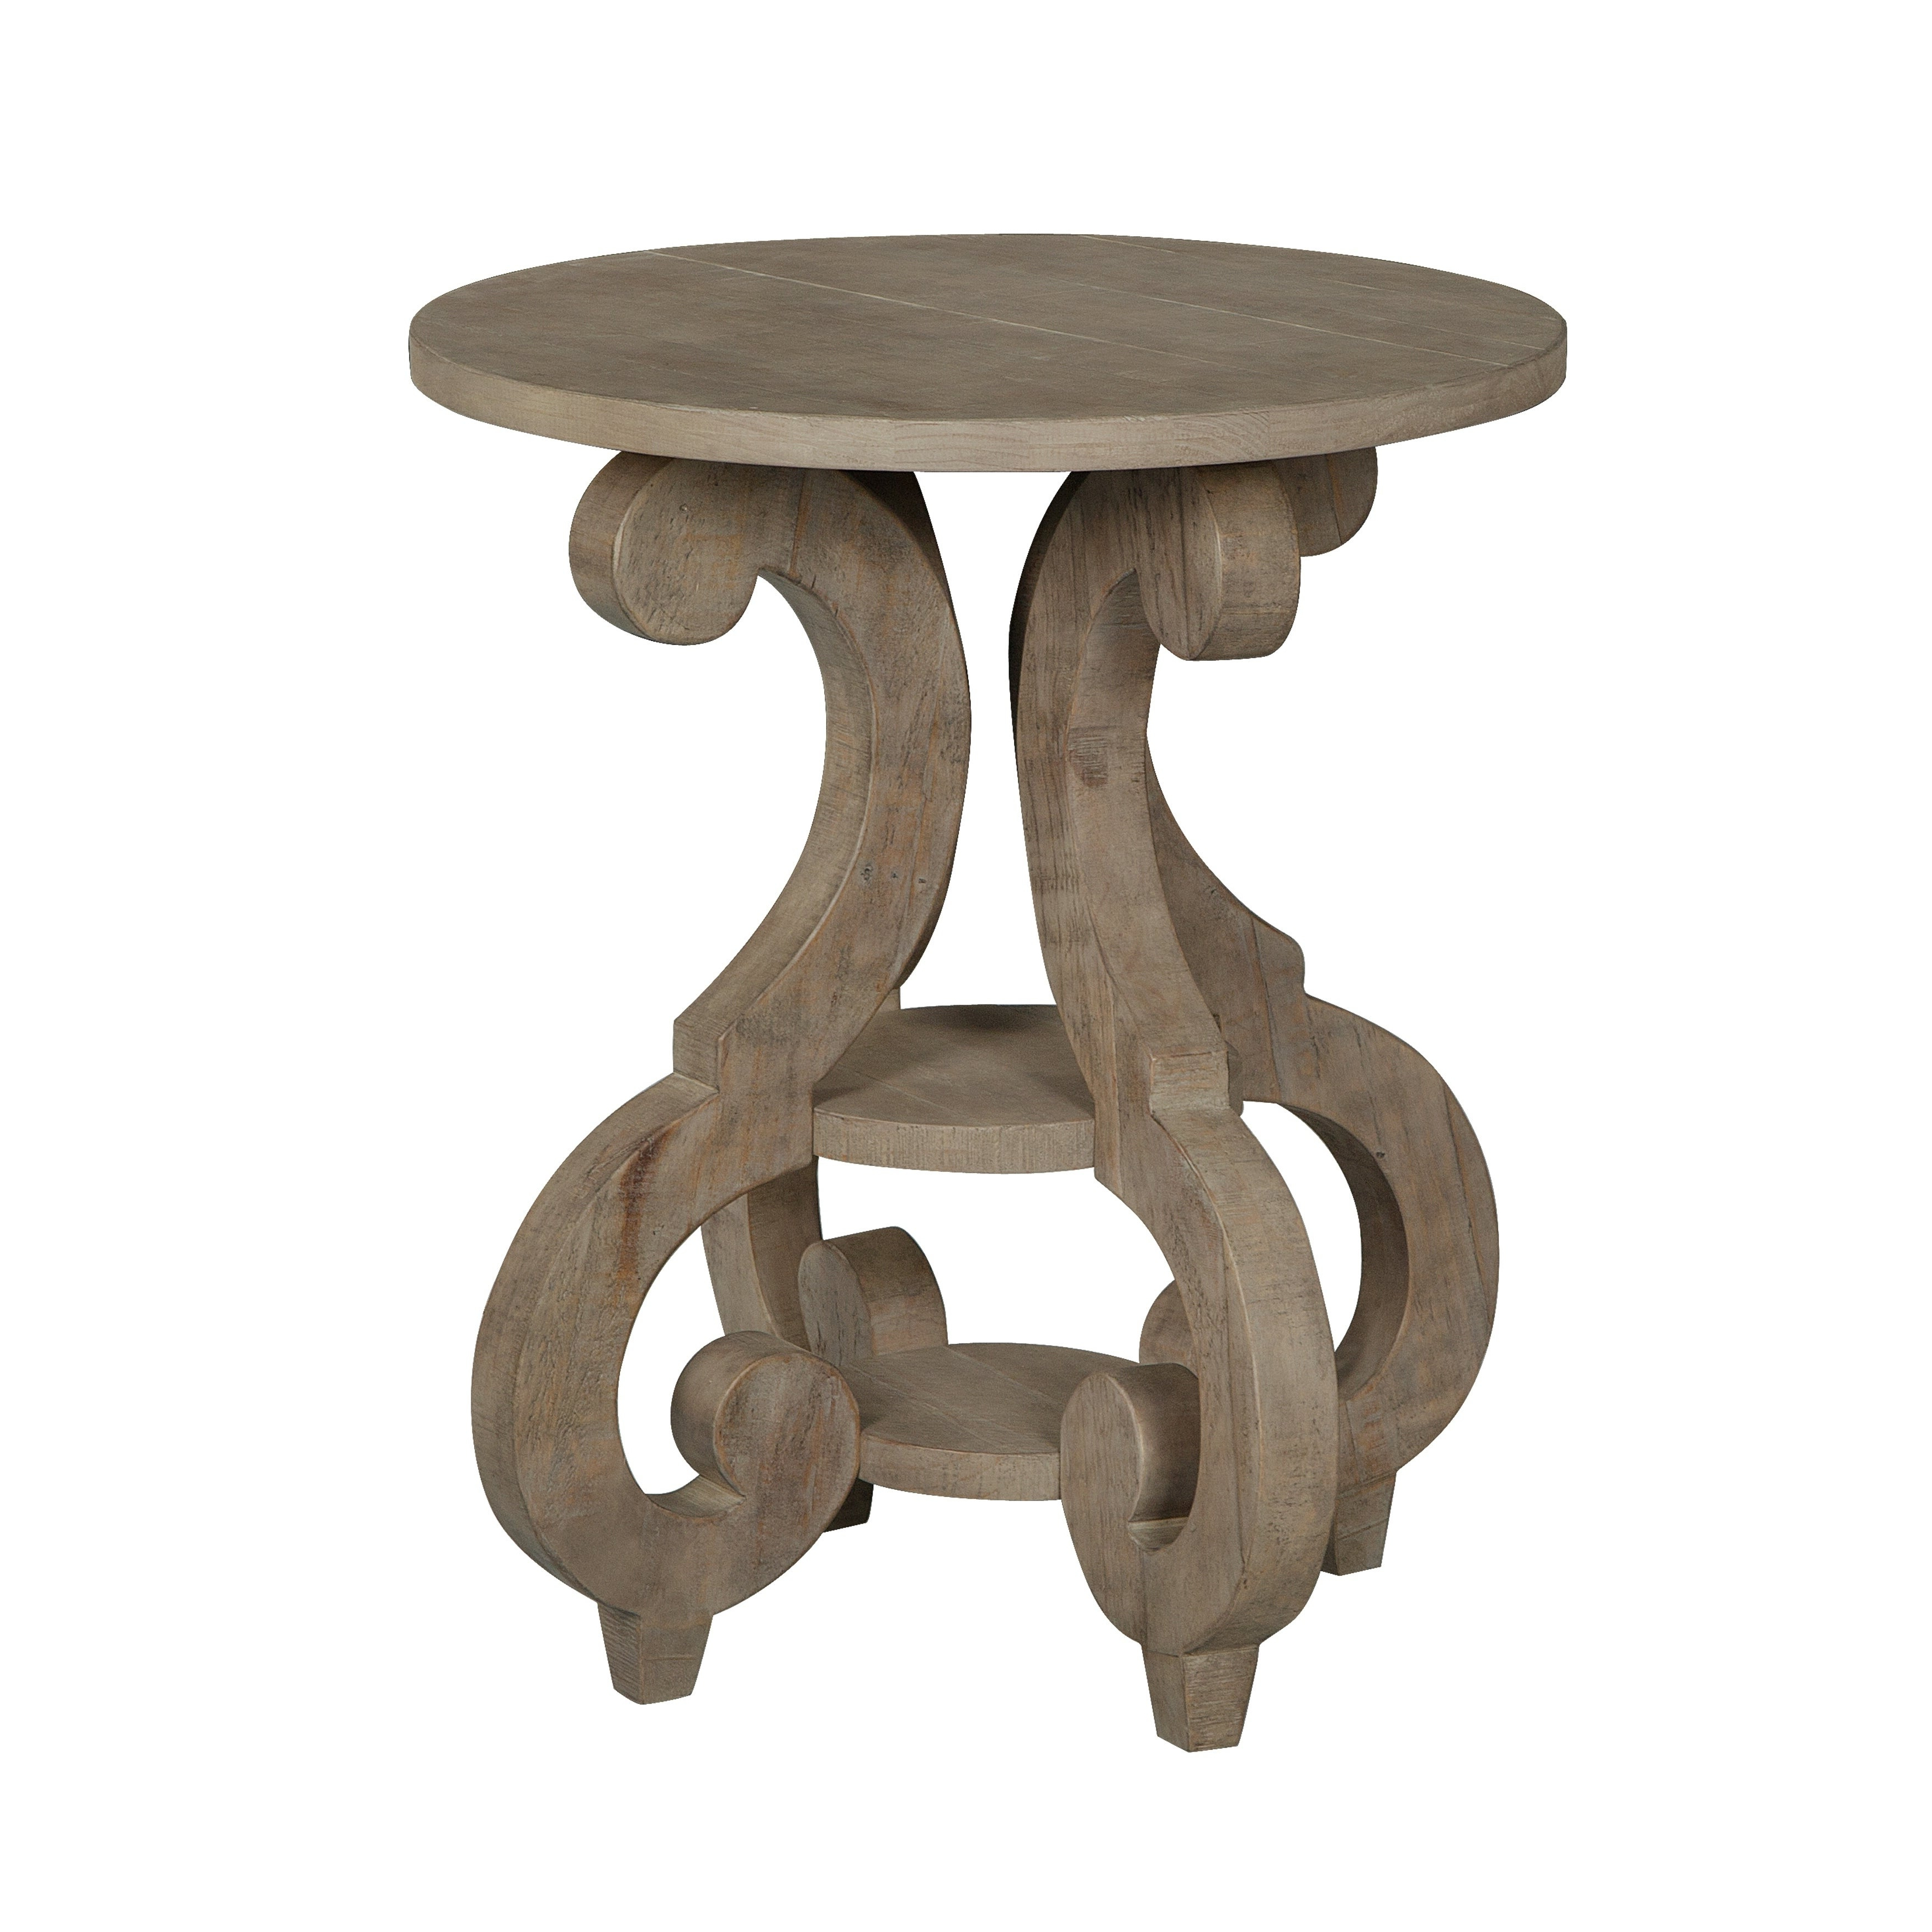 Widely Used Tinley Park Traditional Dove Tail Grey Coffee Tables Within Tinley Park Traditional Dove Tail Grey Round Accent Table (View 5 of 20)